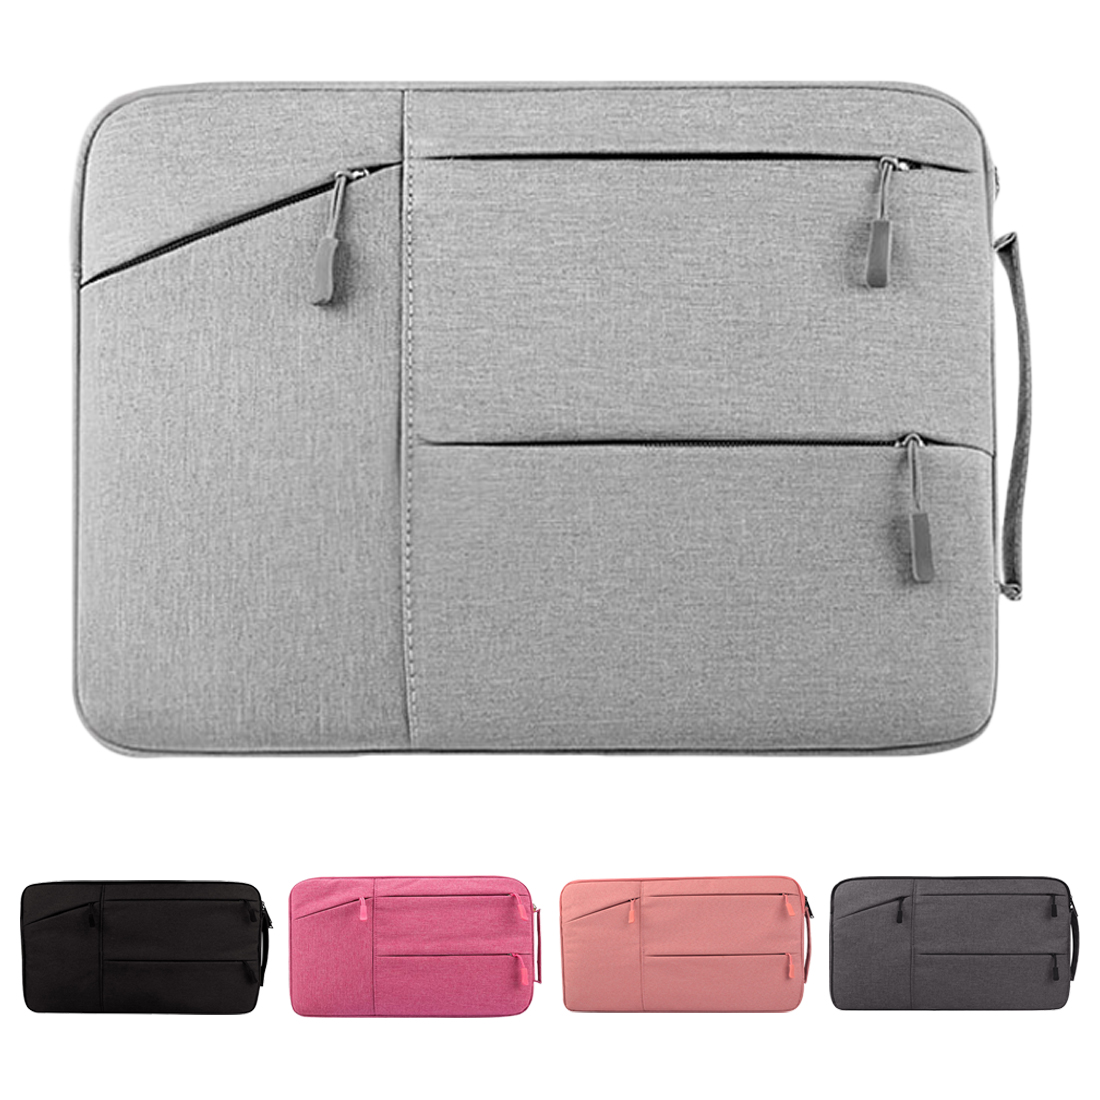 New Fashion Laptop Sleeve Case For Macbook Air Pro Retina 11 12 13 14 15 15.6 Laptop Bag PC Tablet Case Covers For Xiaomi Air